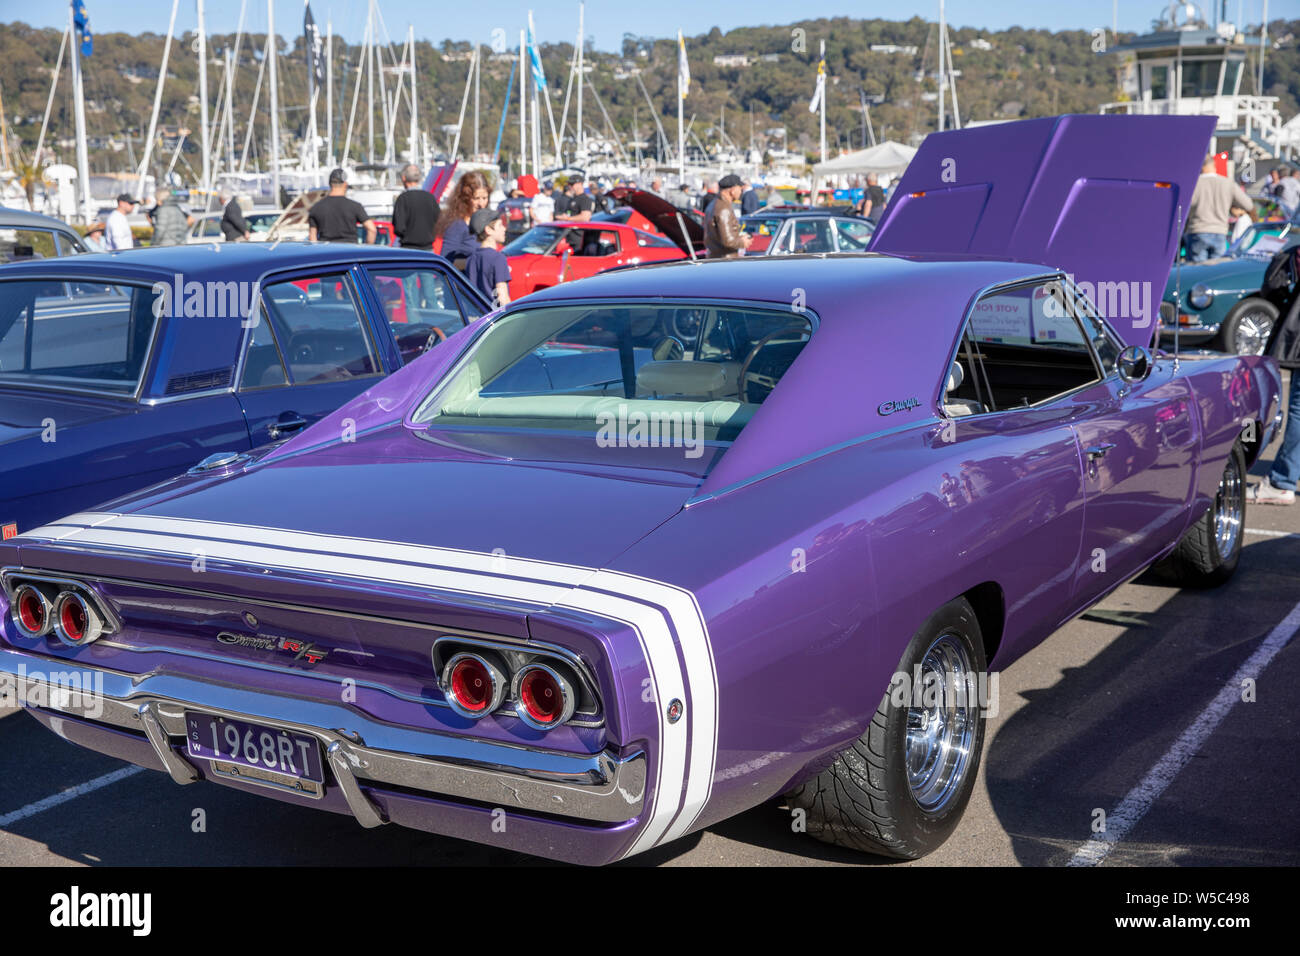 Dodge Charger Muscle Car High Resolution Stock Photography And Images Alamy